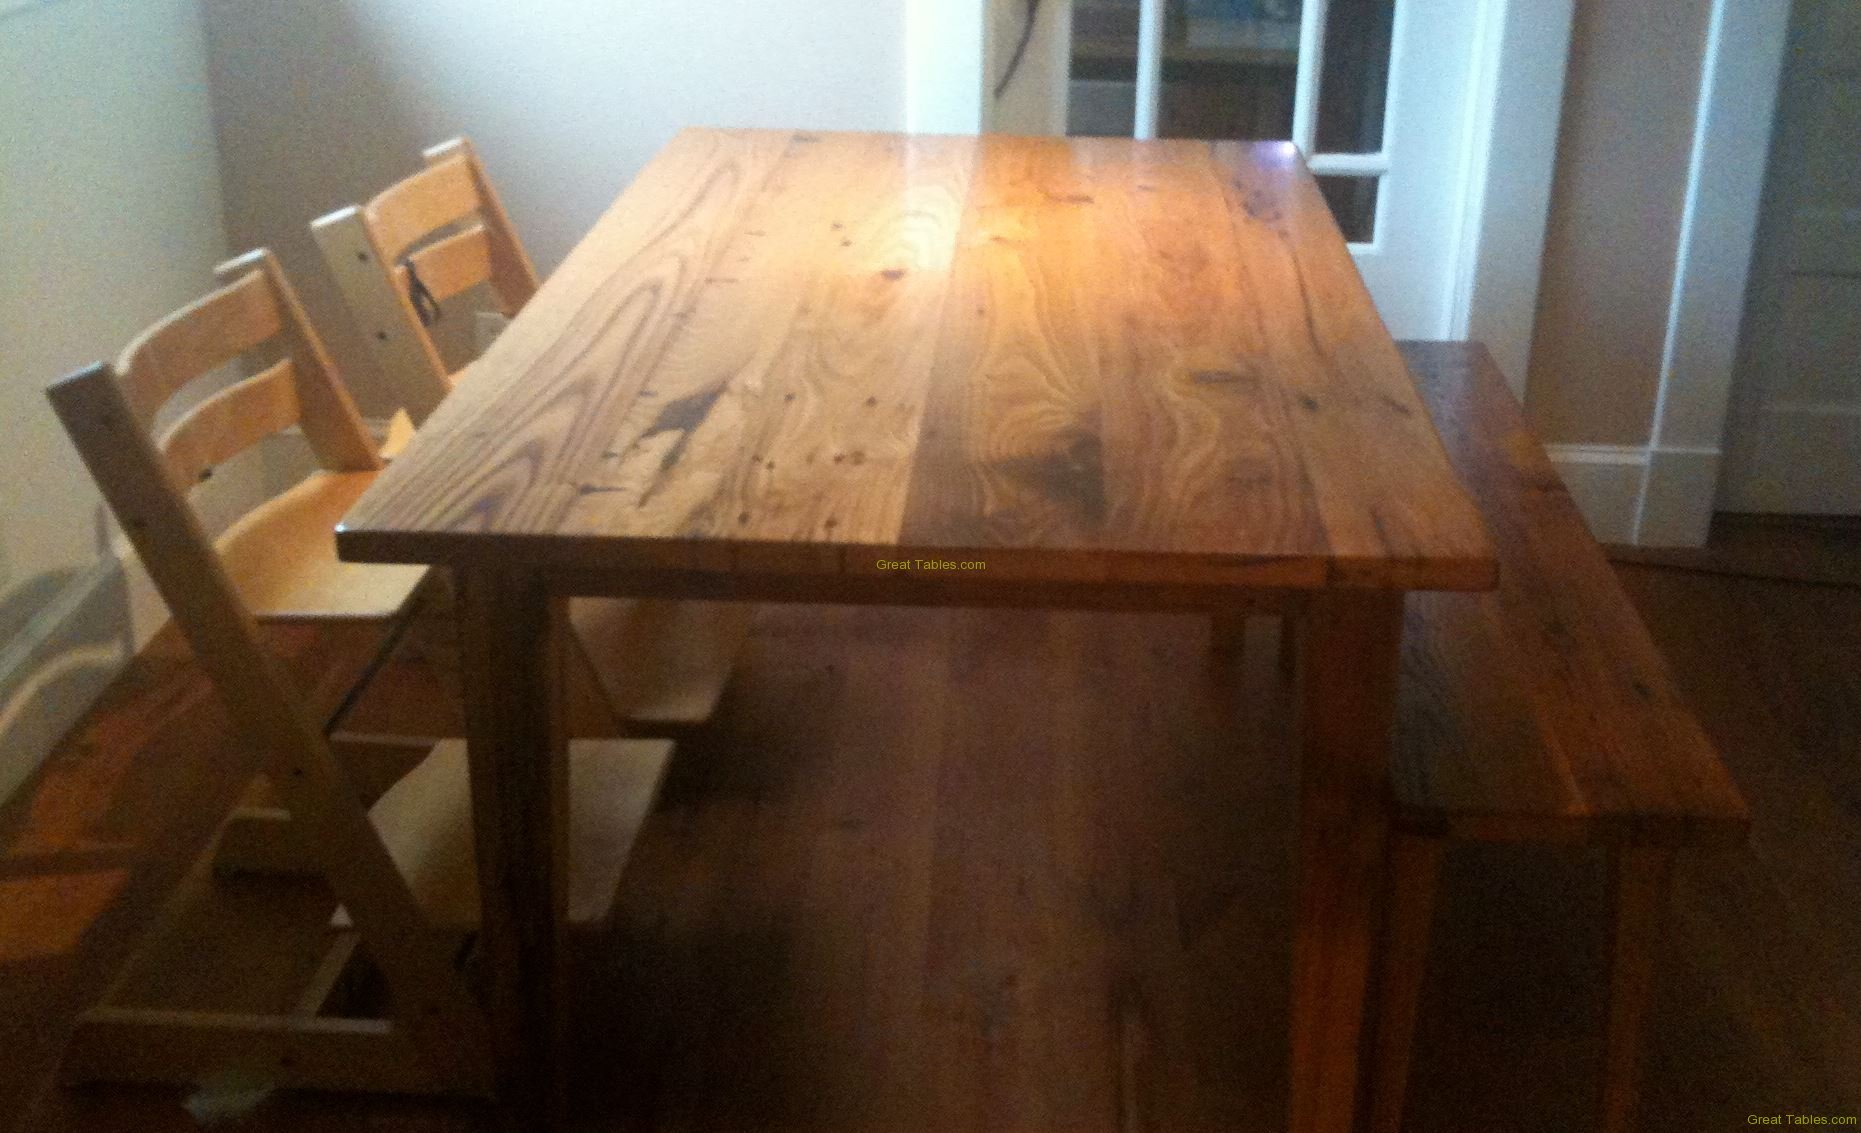 30. Chestnut Table with Bench